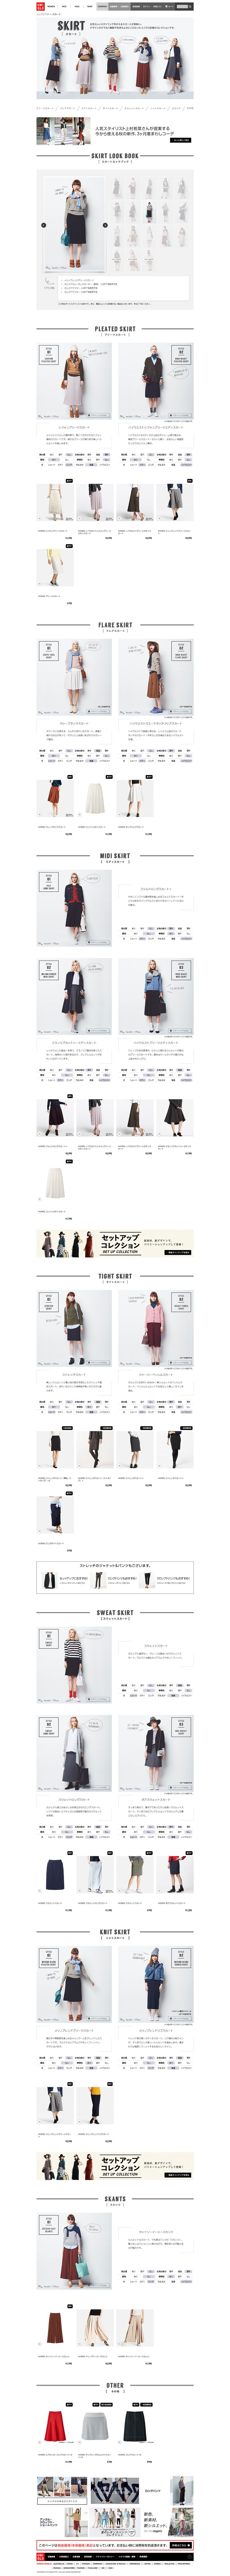 http://www.uniqlo.com/jp/store/feature/uq/skirt/women/#pleated